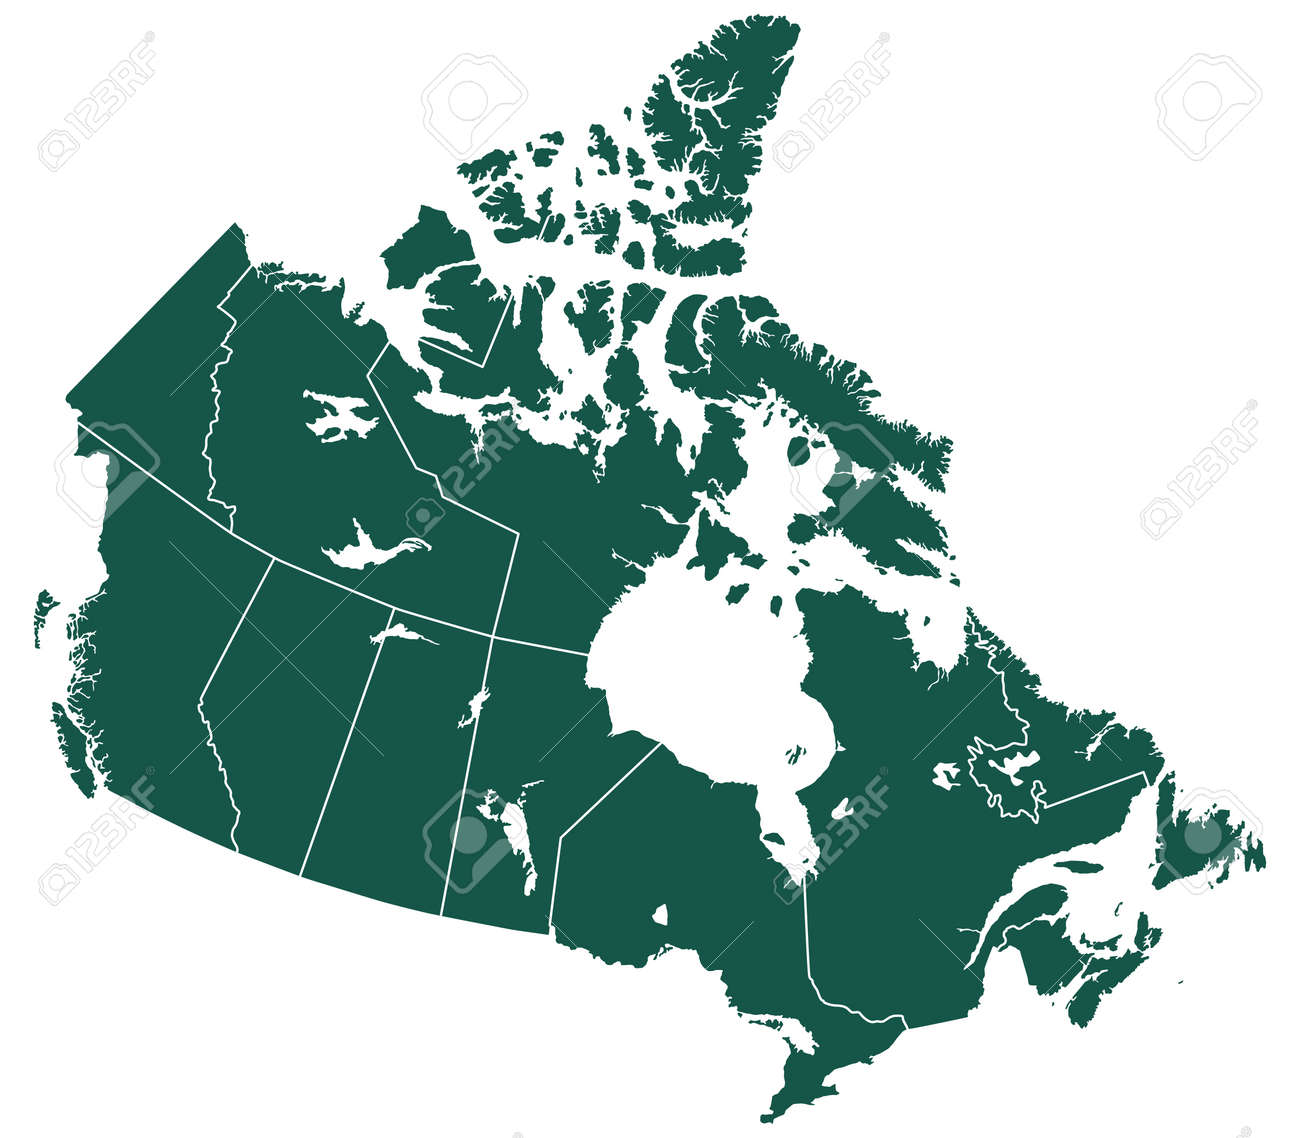 Map Of Canada Silhouette.Silhouette Provinces Map Of The Canada All Objects Are Independent